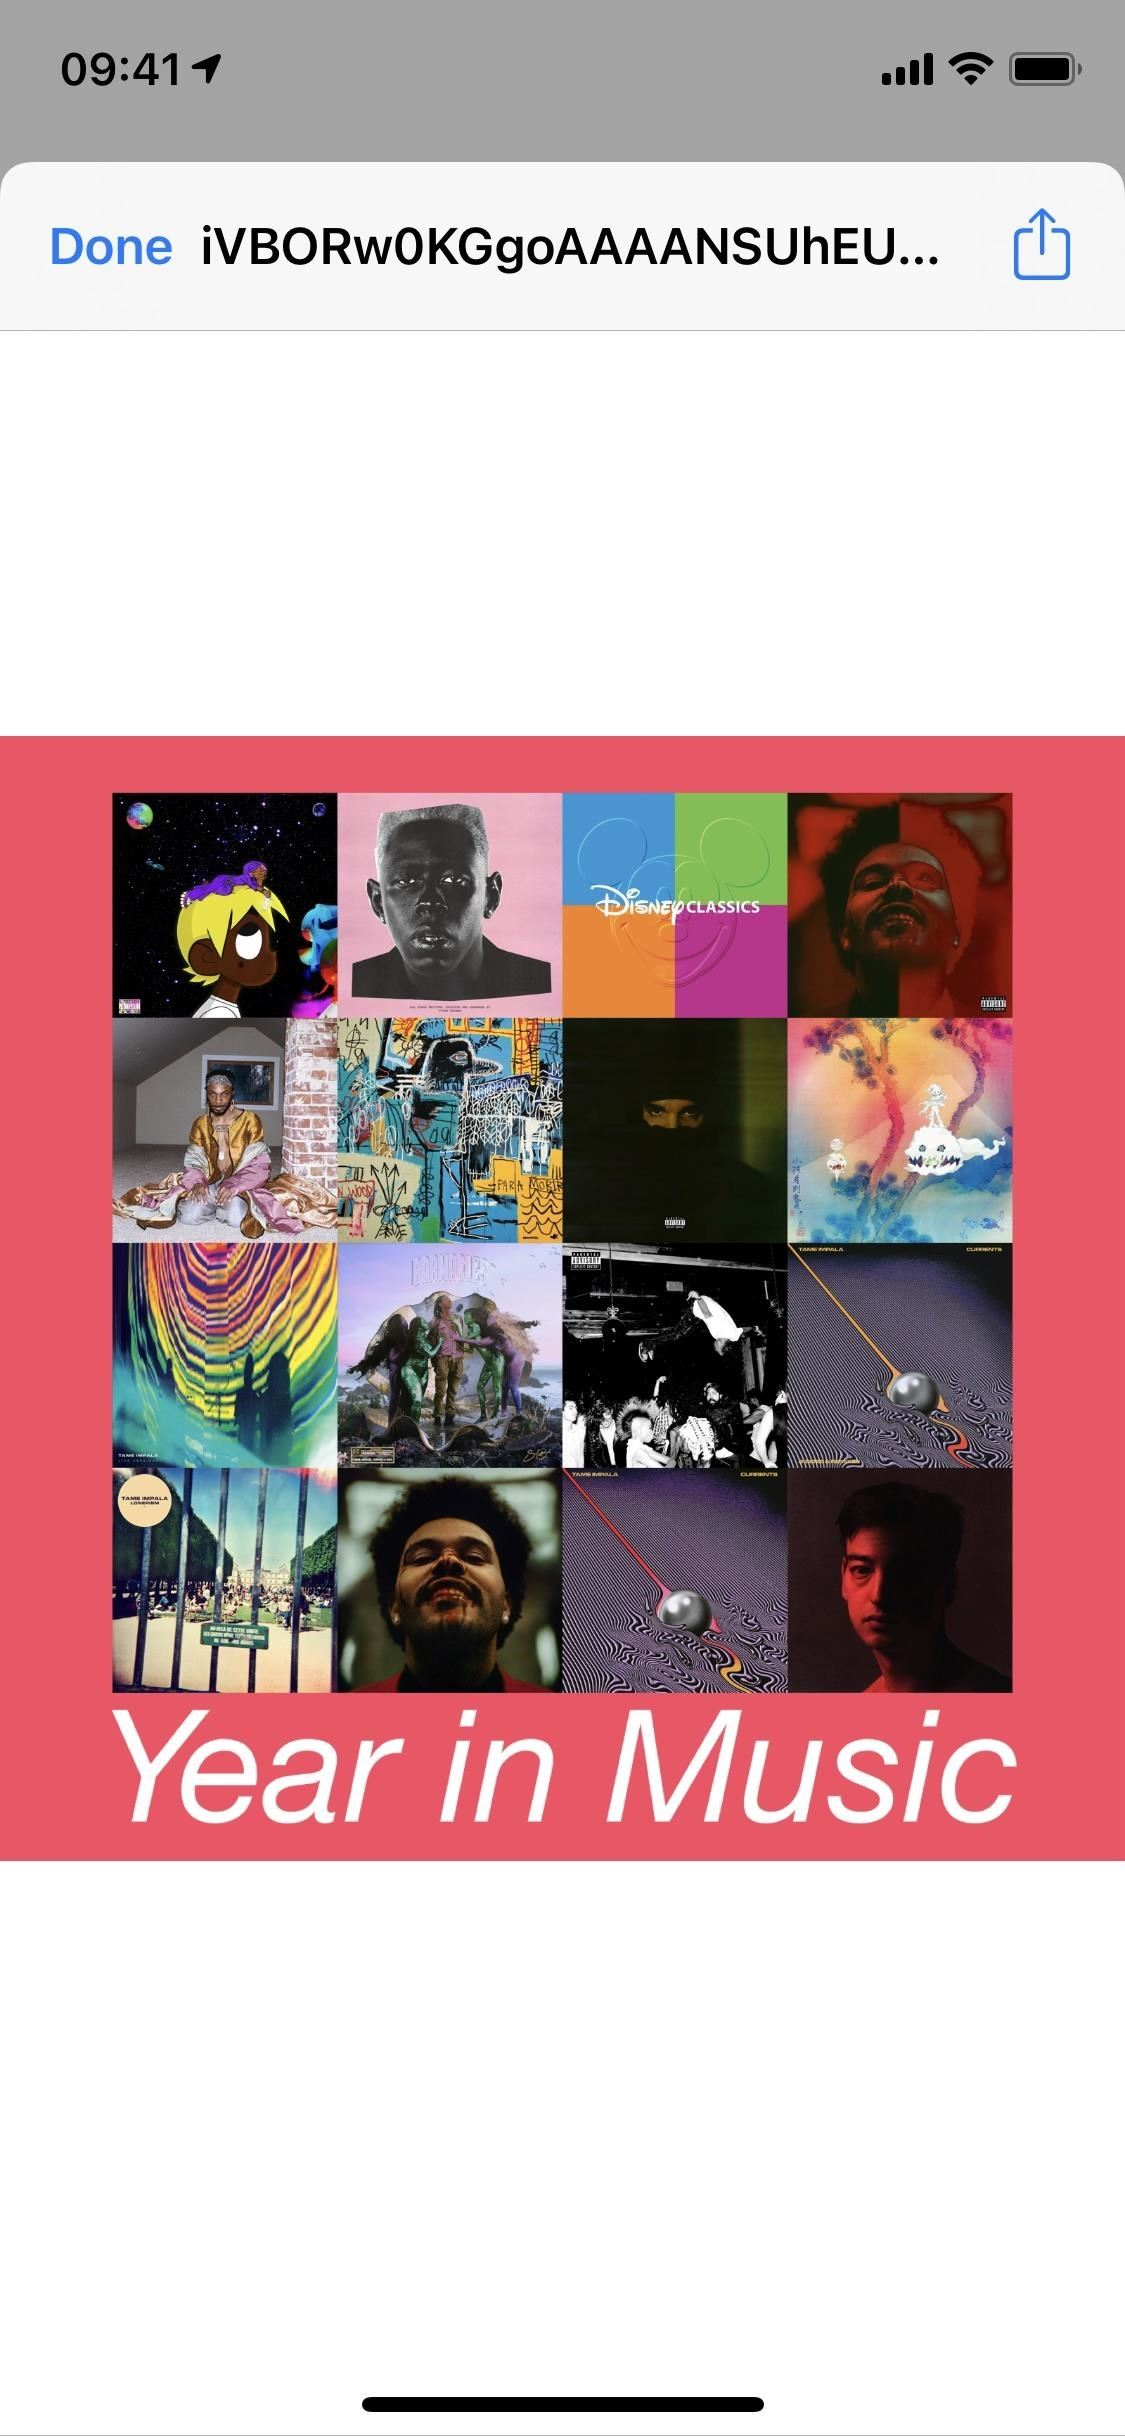 Create a 'My Year in Music' Cover Art Collage from Your iPhone's Music Library to Share on Social Media